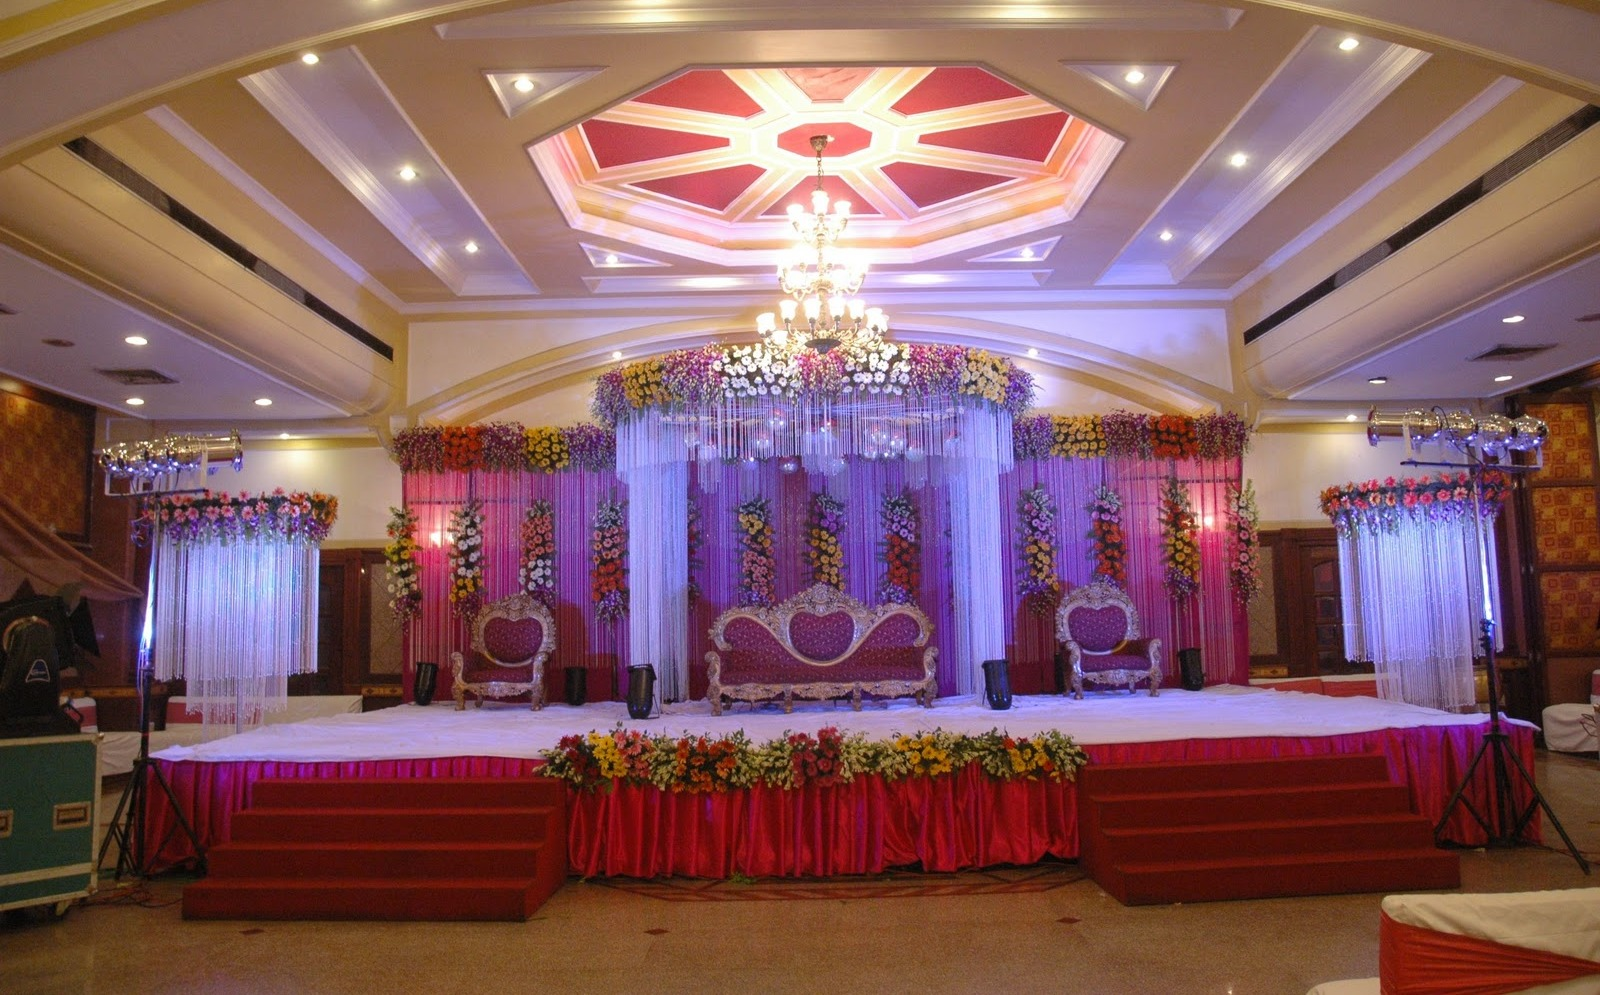 event planner planning planners dummies grand indian management weddings plans hire tips decorations celebration